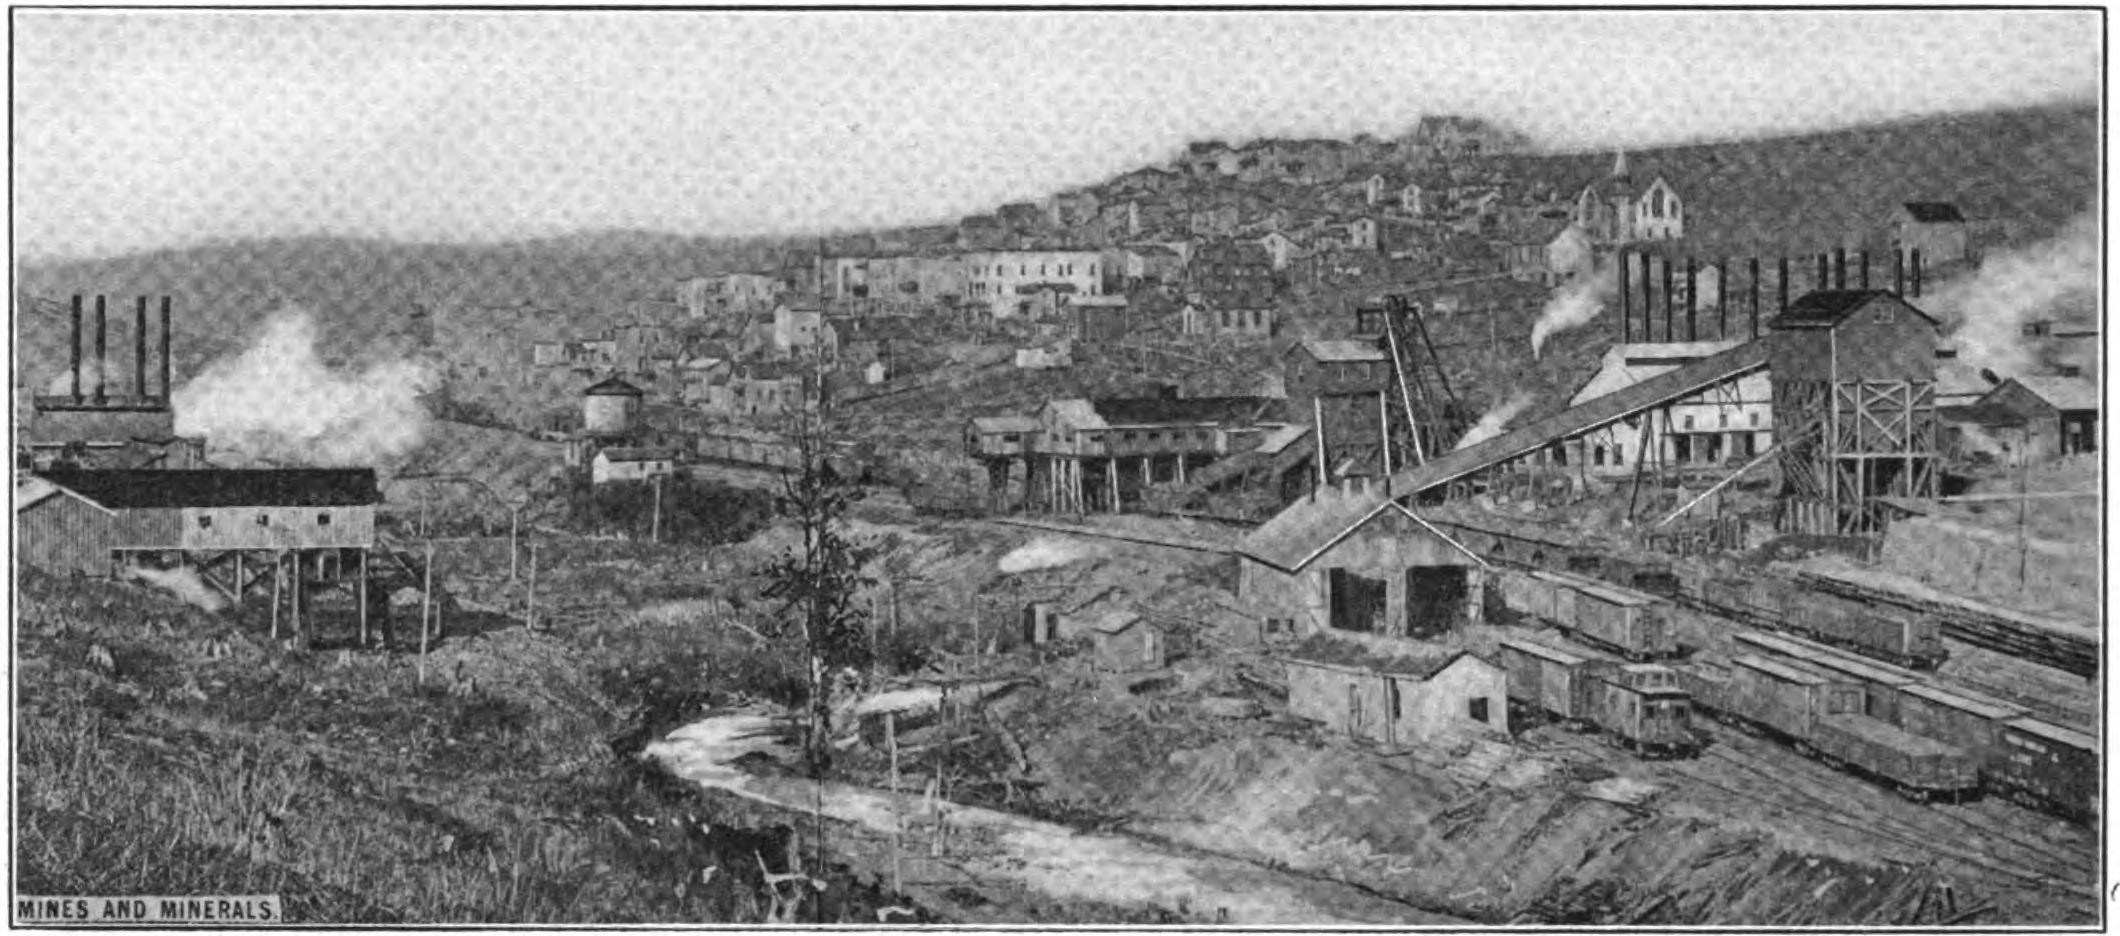 A David Coal and Coke Company mining operation in Thomas, WV in 1909